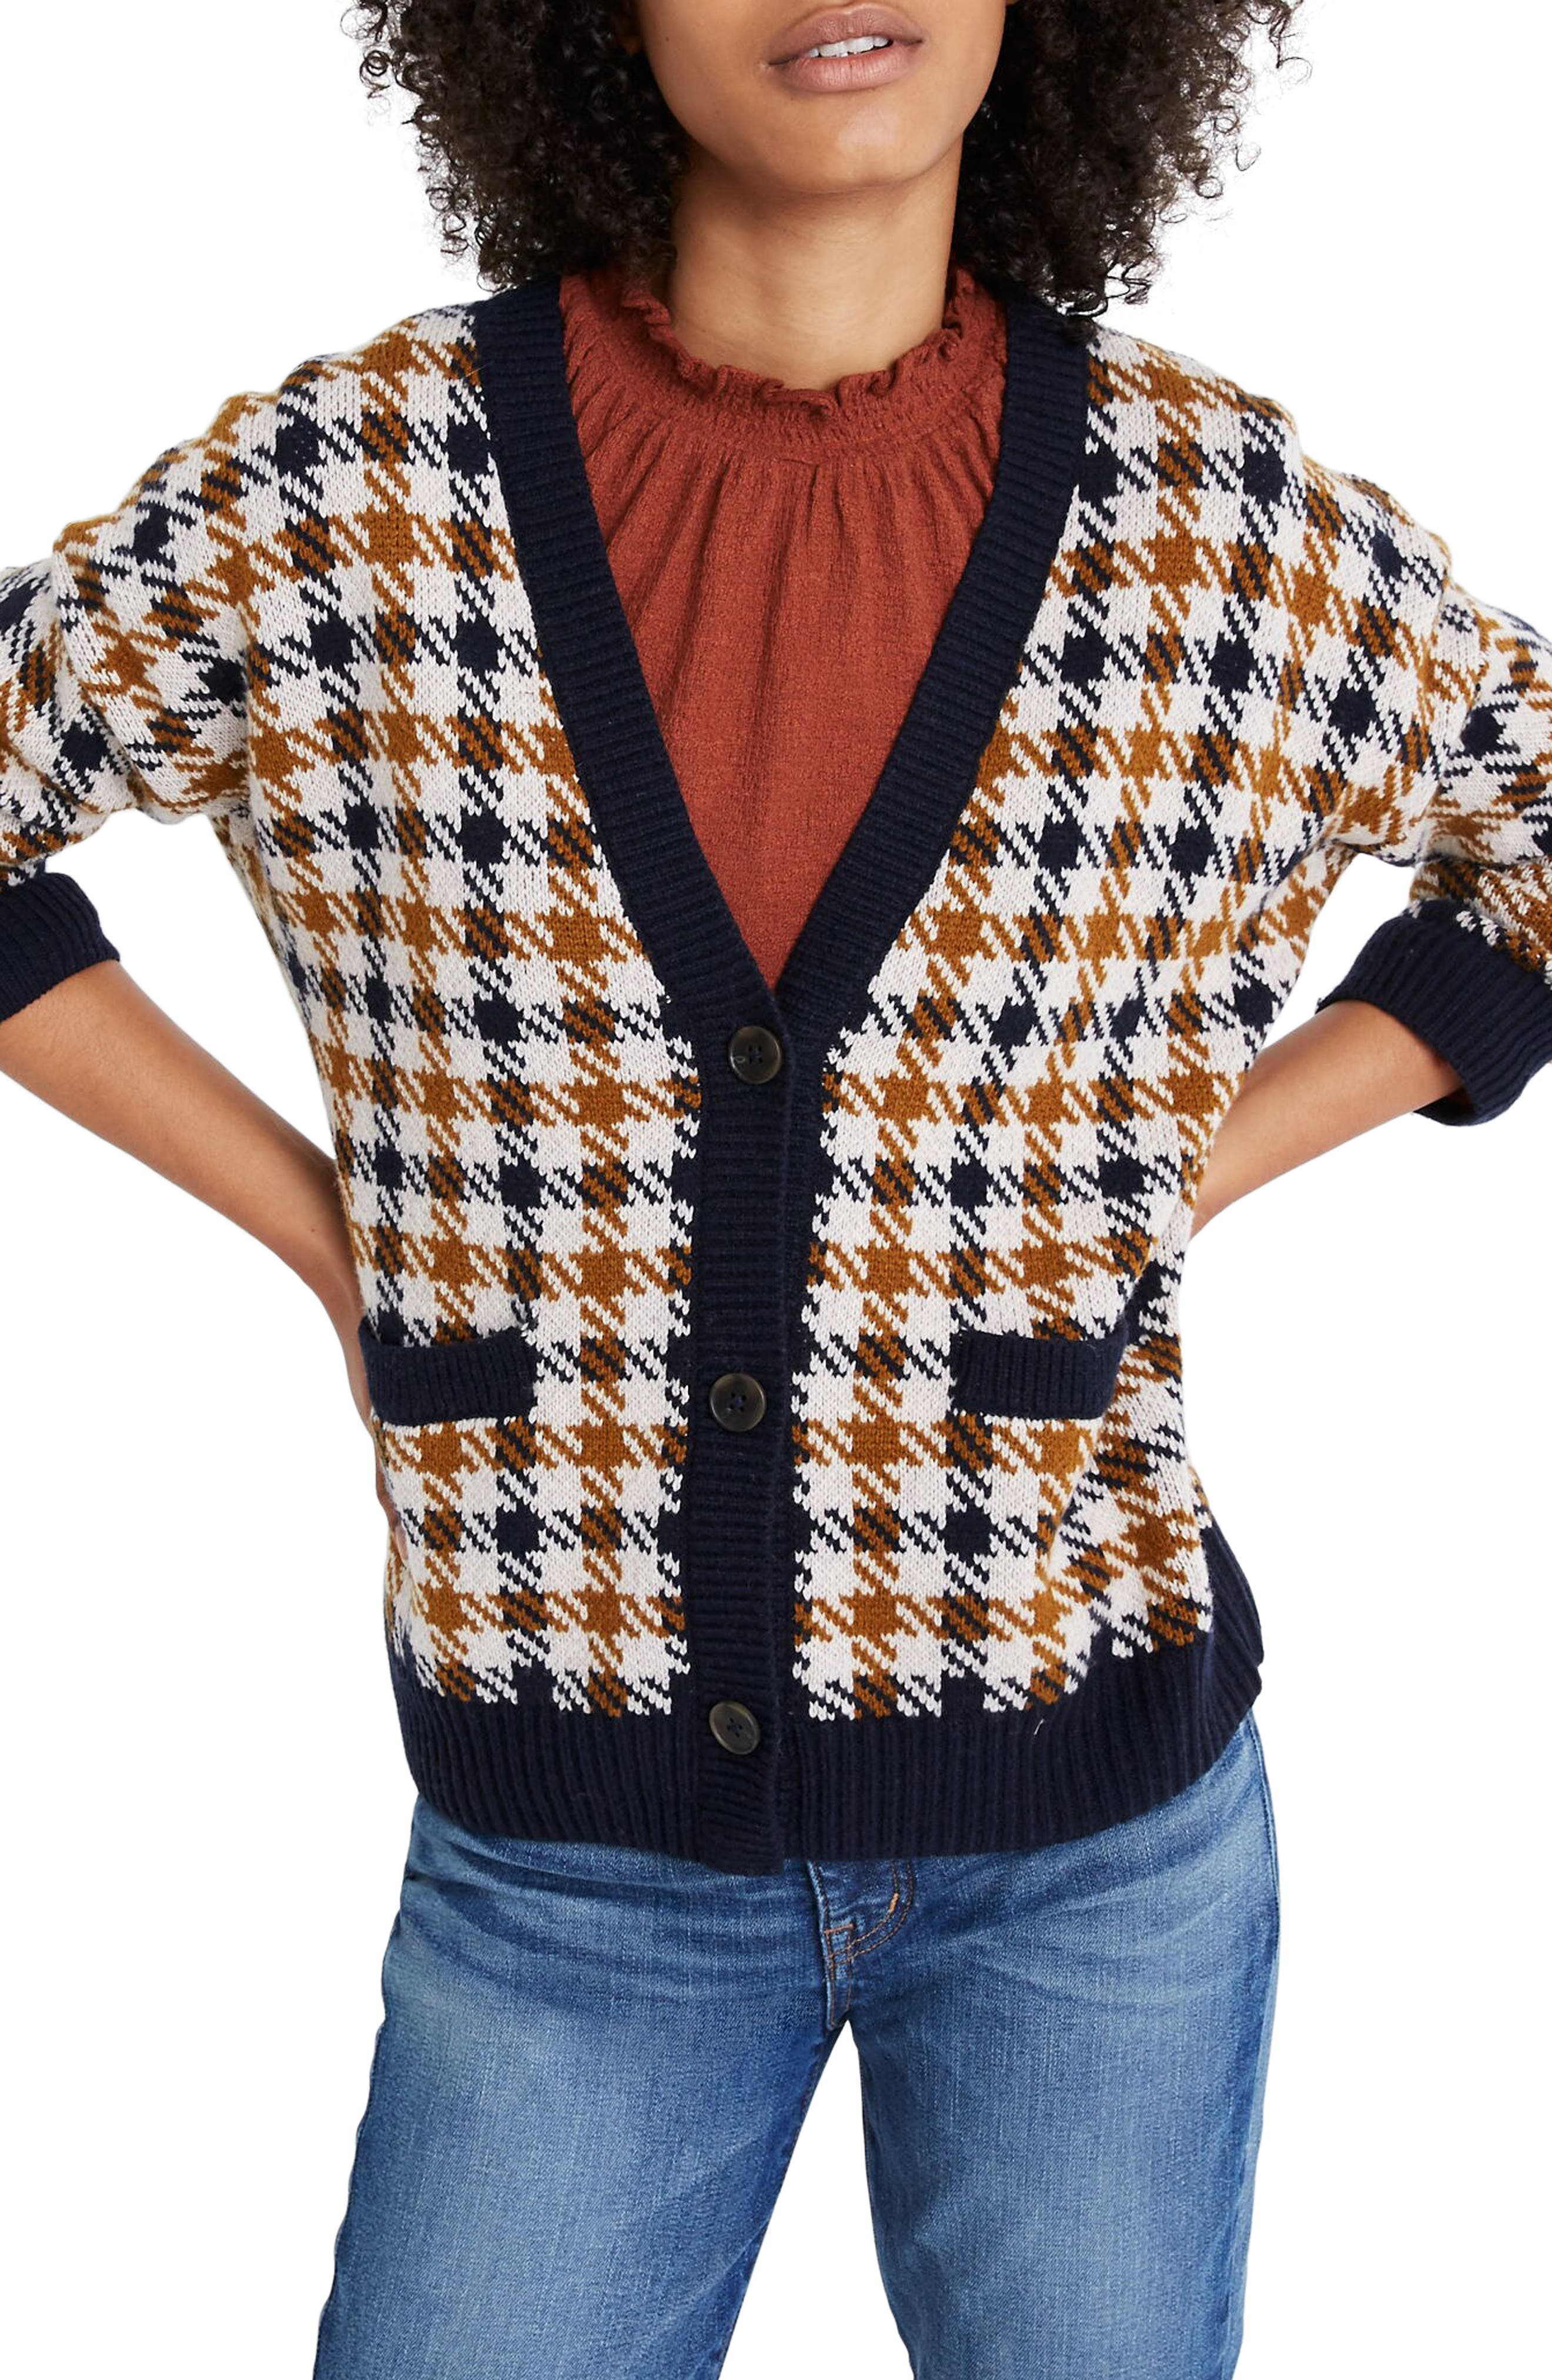 Vintage Sweaters: Cable Knit, Fair Isle Cardigans & Sweaters Womens Madewell Plaid Belgrade Shrunken Cardigan Sweater Size XX-Large - Blue $110.00 AT vintagedancer.com